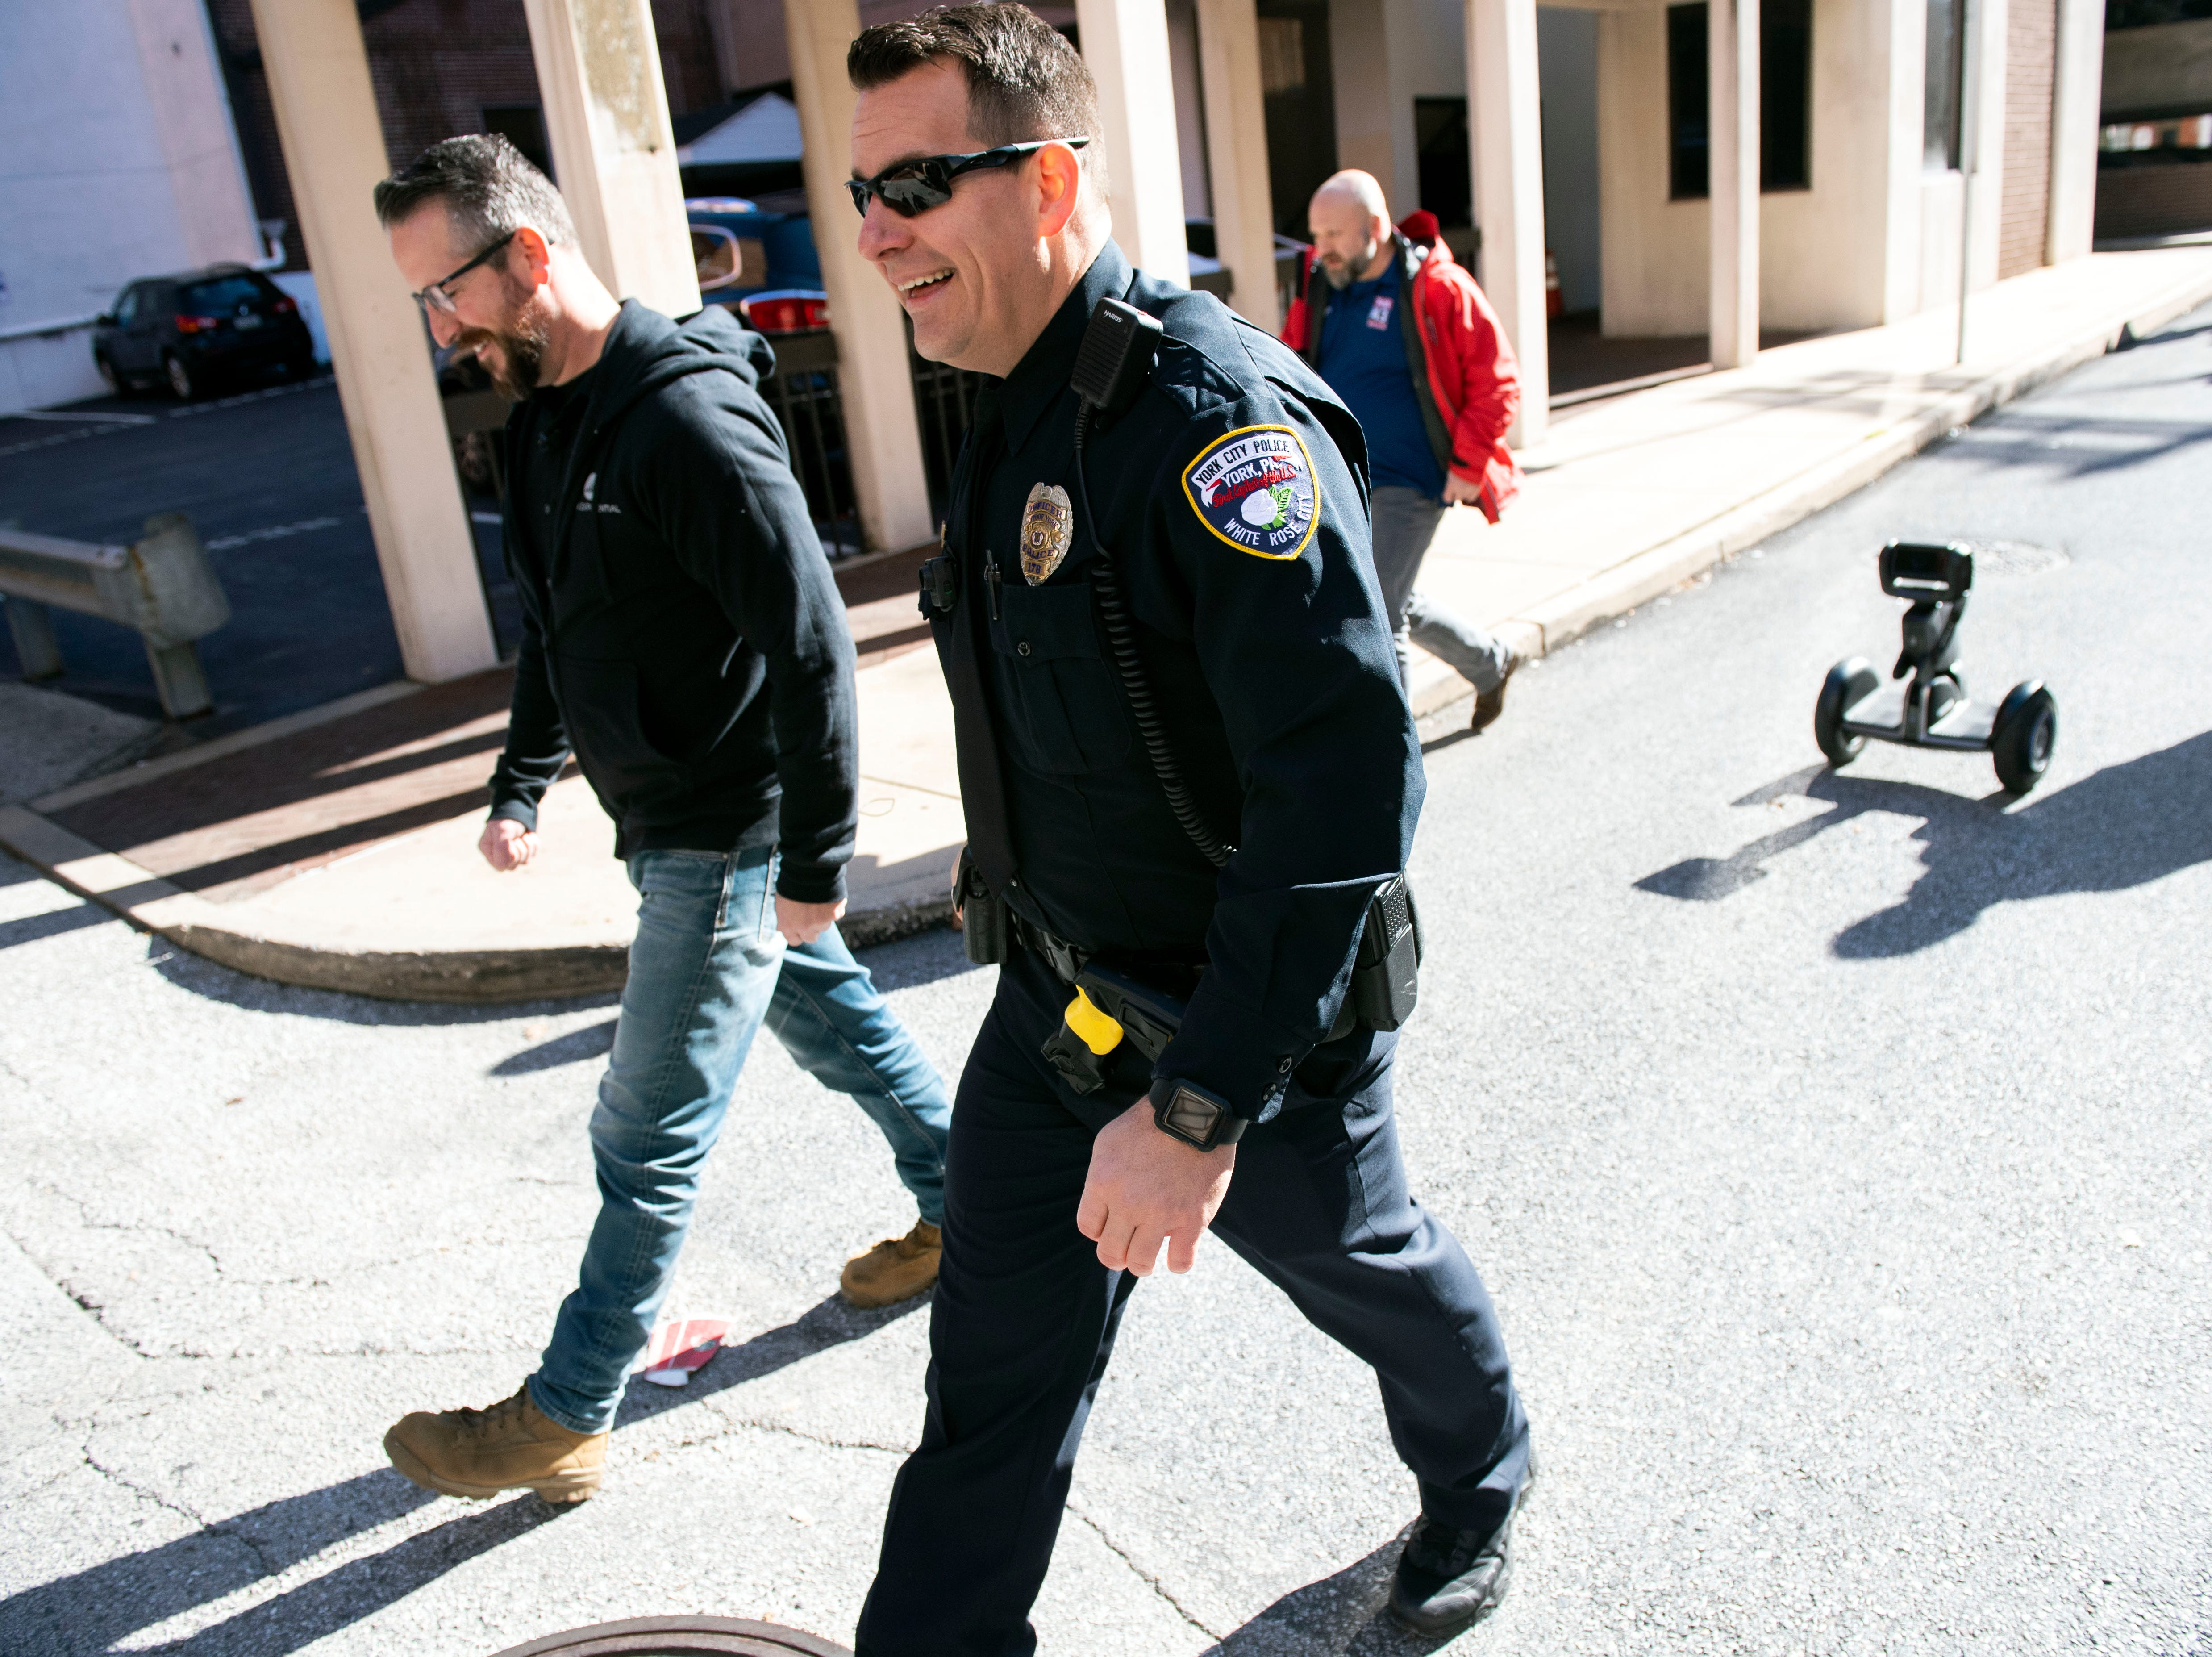 York Exponential CEO John McElligott, left, and York City Police Officer Derek Hartman walk toward Cherry Lane while the 'Loomo' follows behind. The two were trying out the robot, which could be used to help in city policing.